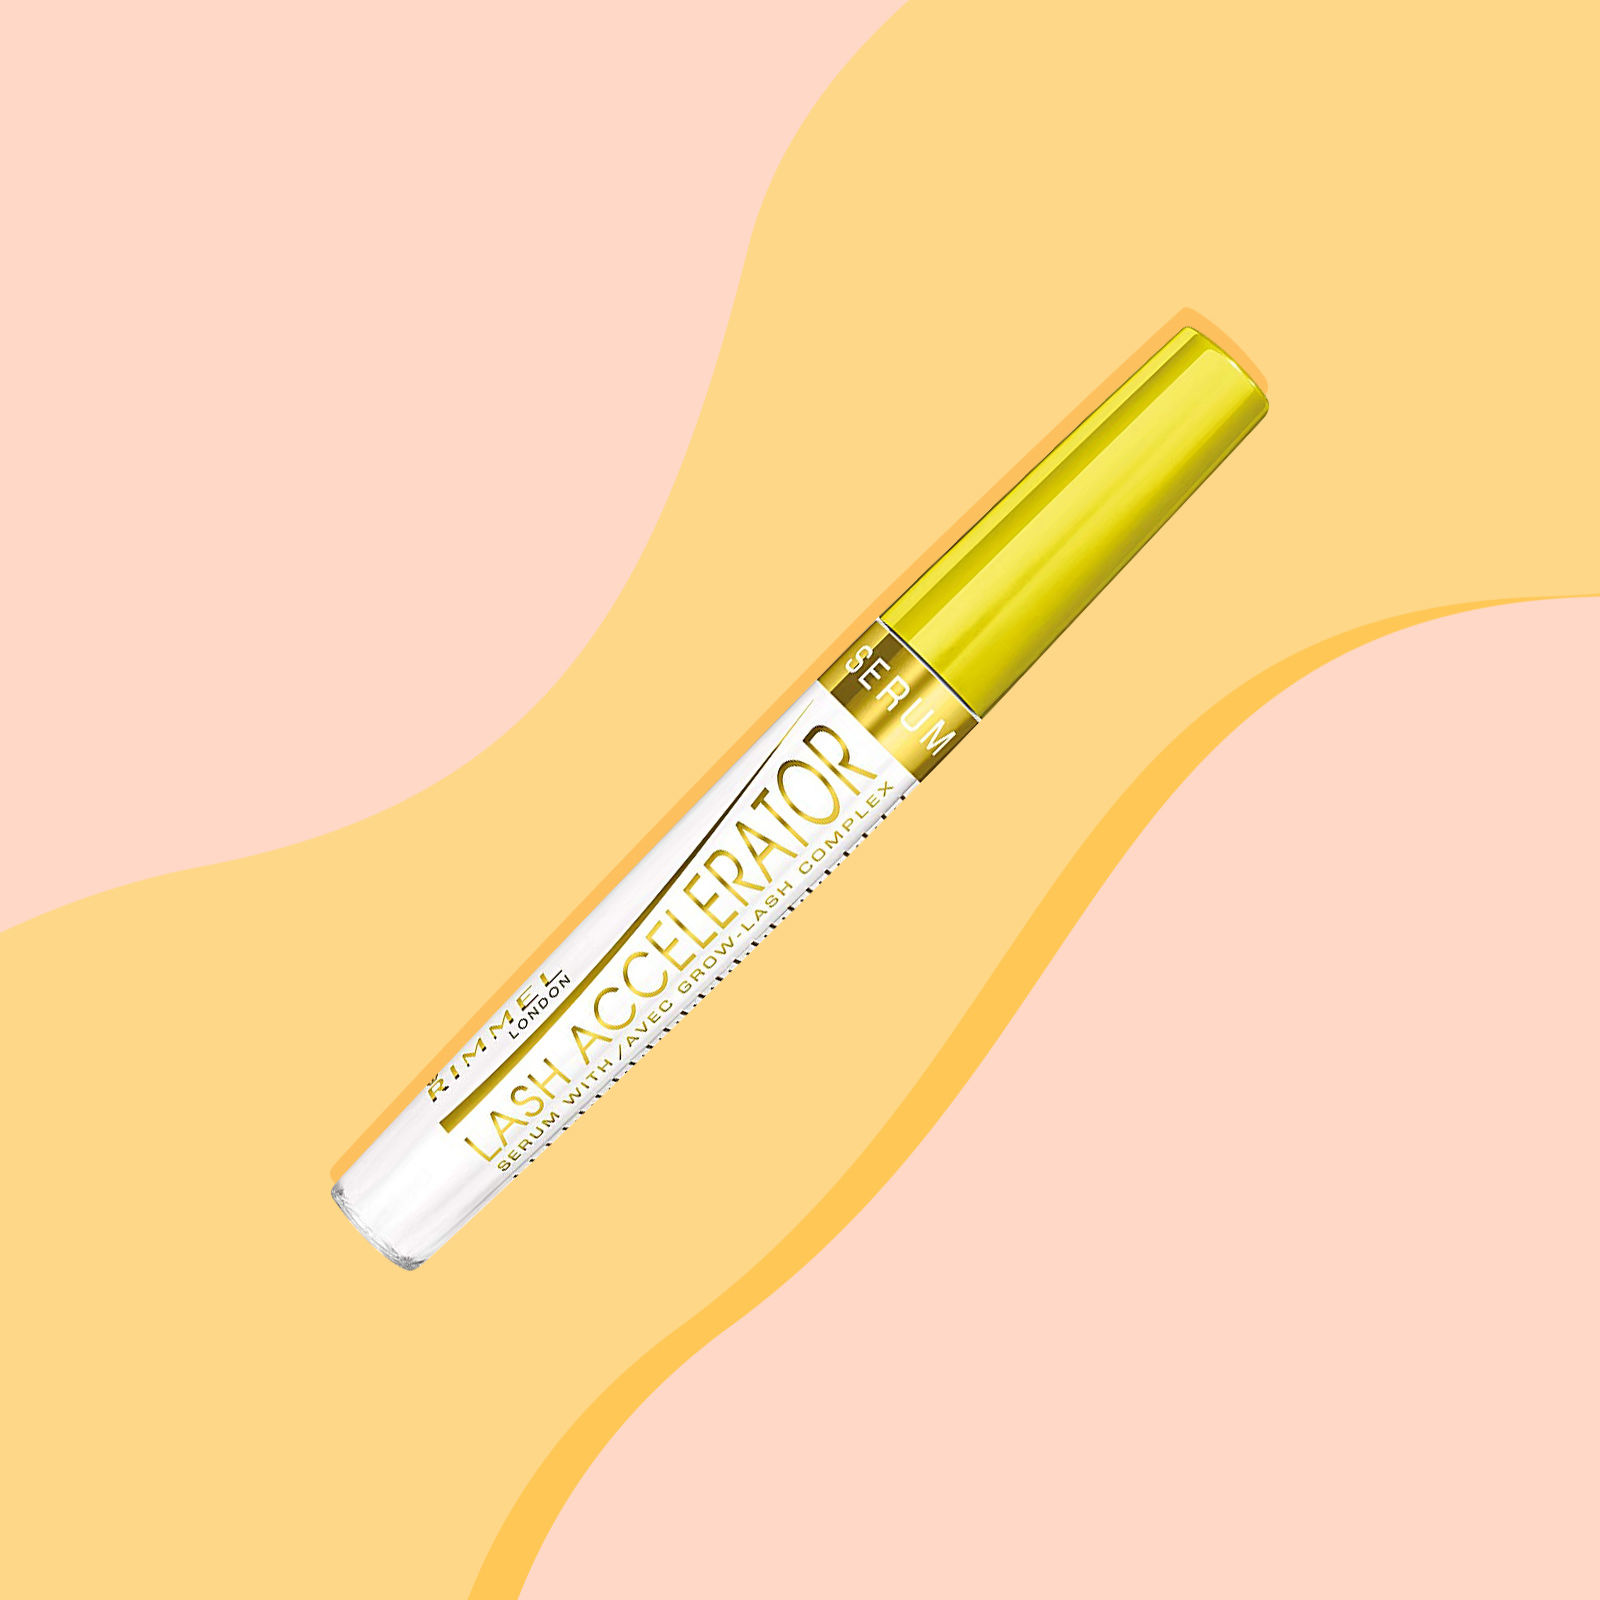 This is One Of The Best Eyelash Growth Serums On The Market — And It's Under $10